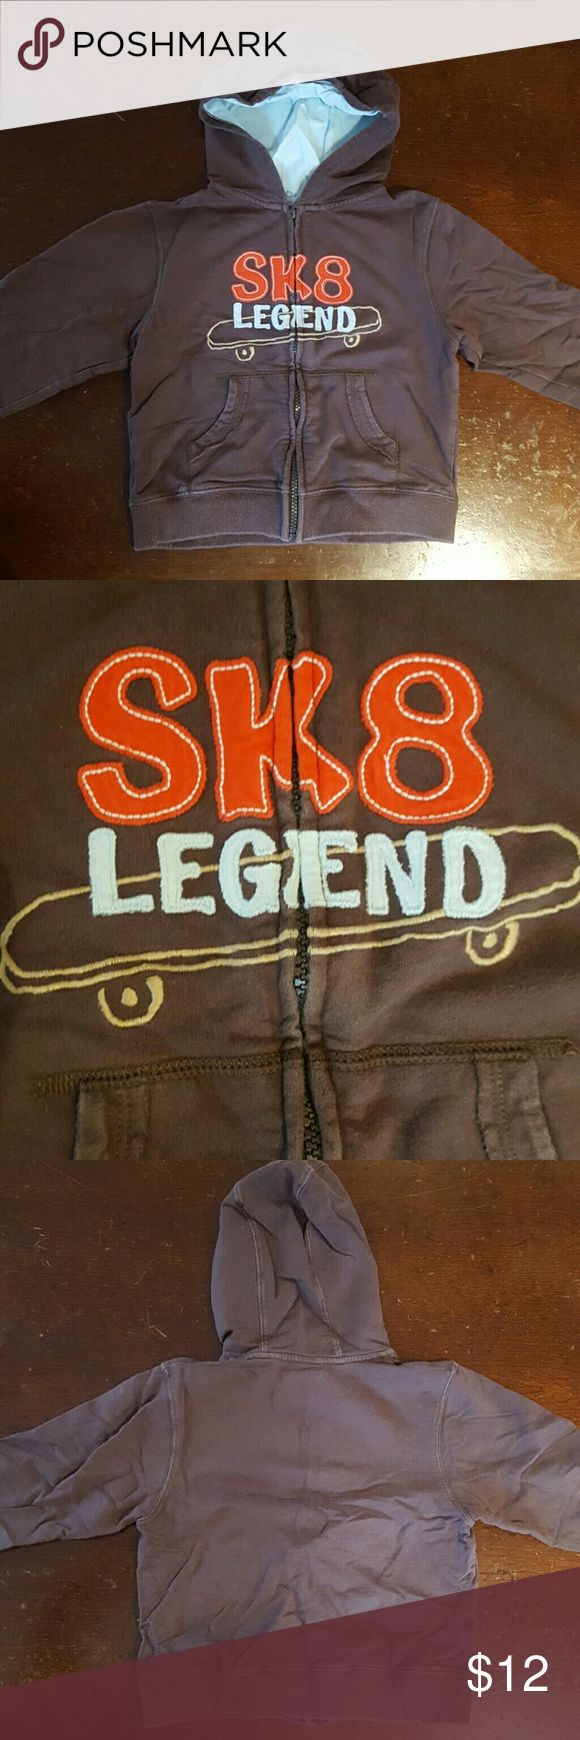 Gymboree Zip-up Hoodie, Size 4T-5T Gymboree brown zip-up hoodie with embroidered  skateboard and says 'SK8 Legend.'  100% cotton.  Size 4T-5T.  No visible stains or damage. Comes from a non-smoking home. Gymboree Shirts & Tops Sweatshirts & Hoodies